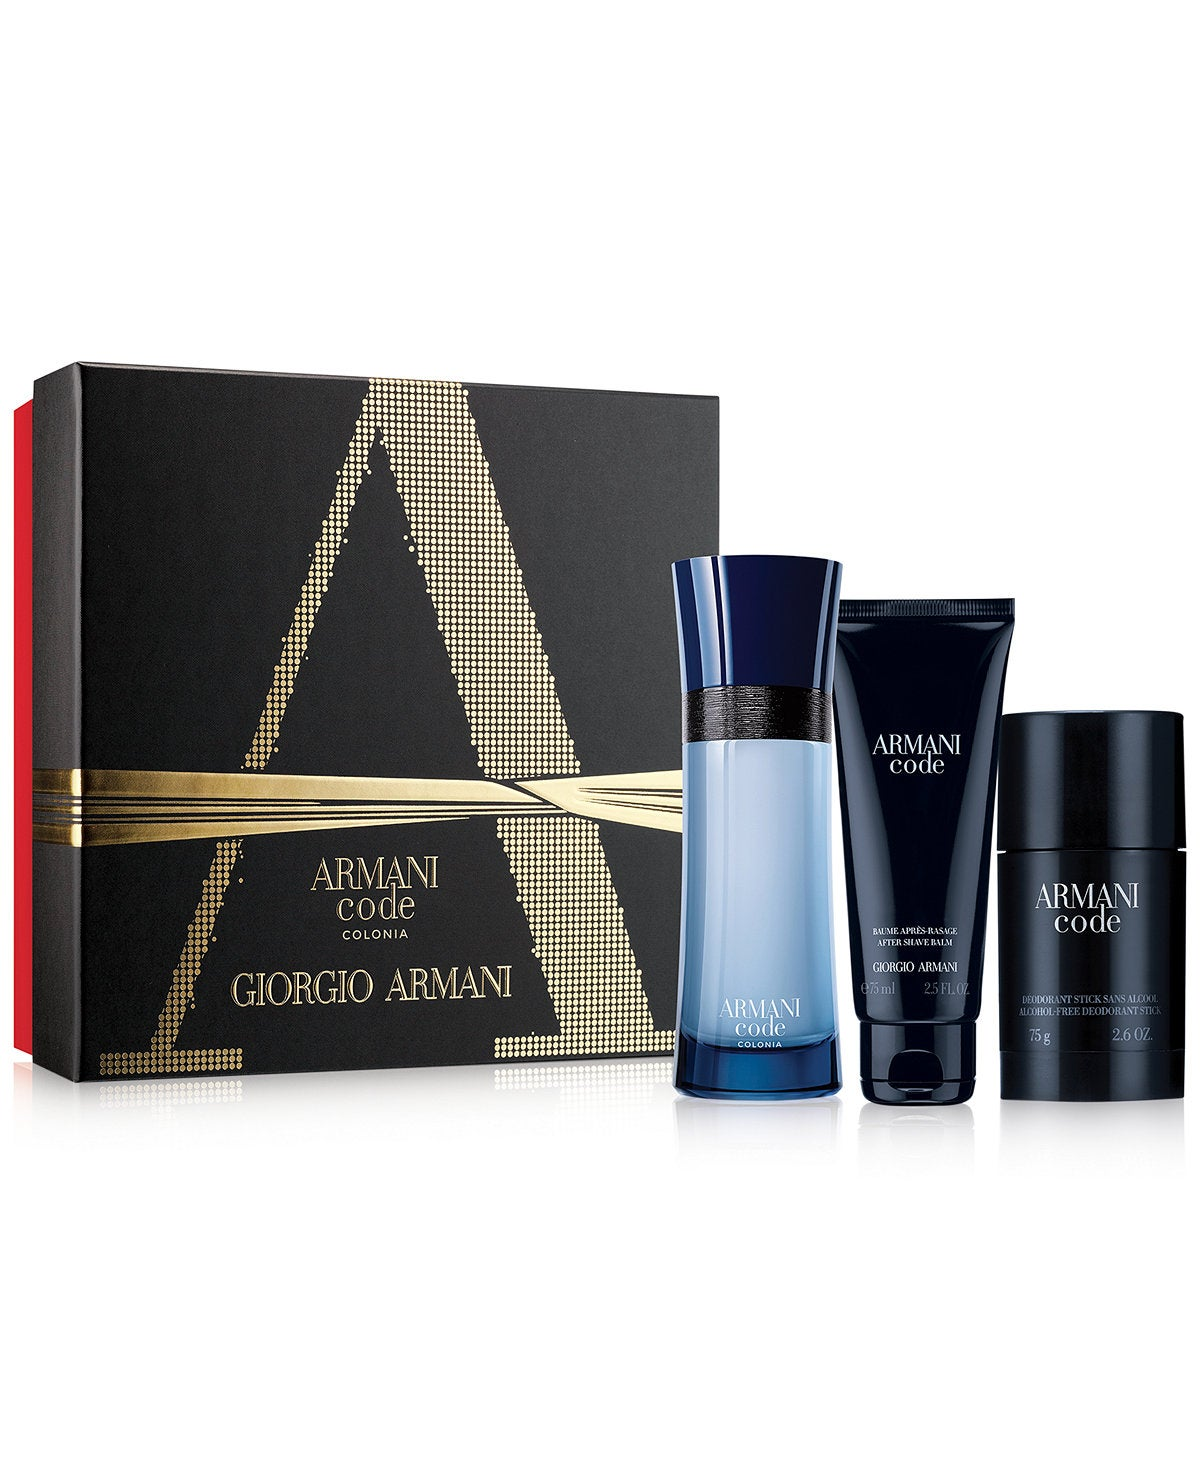 Best Fragrance Perfume Gifts For Her And Him